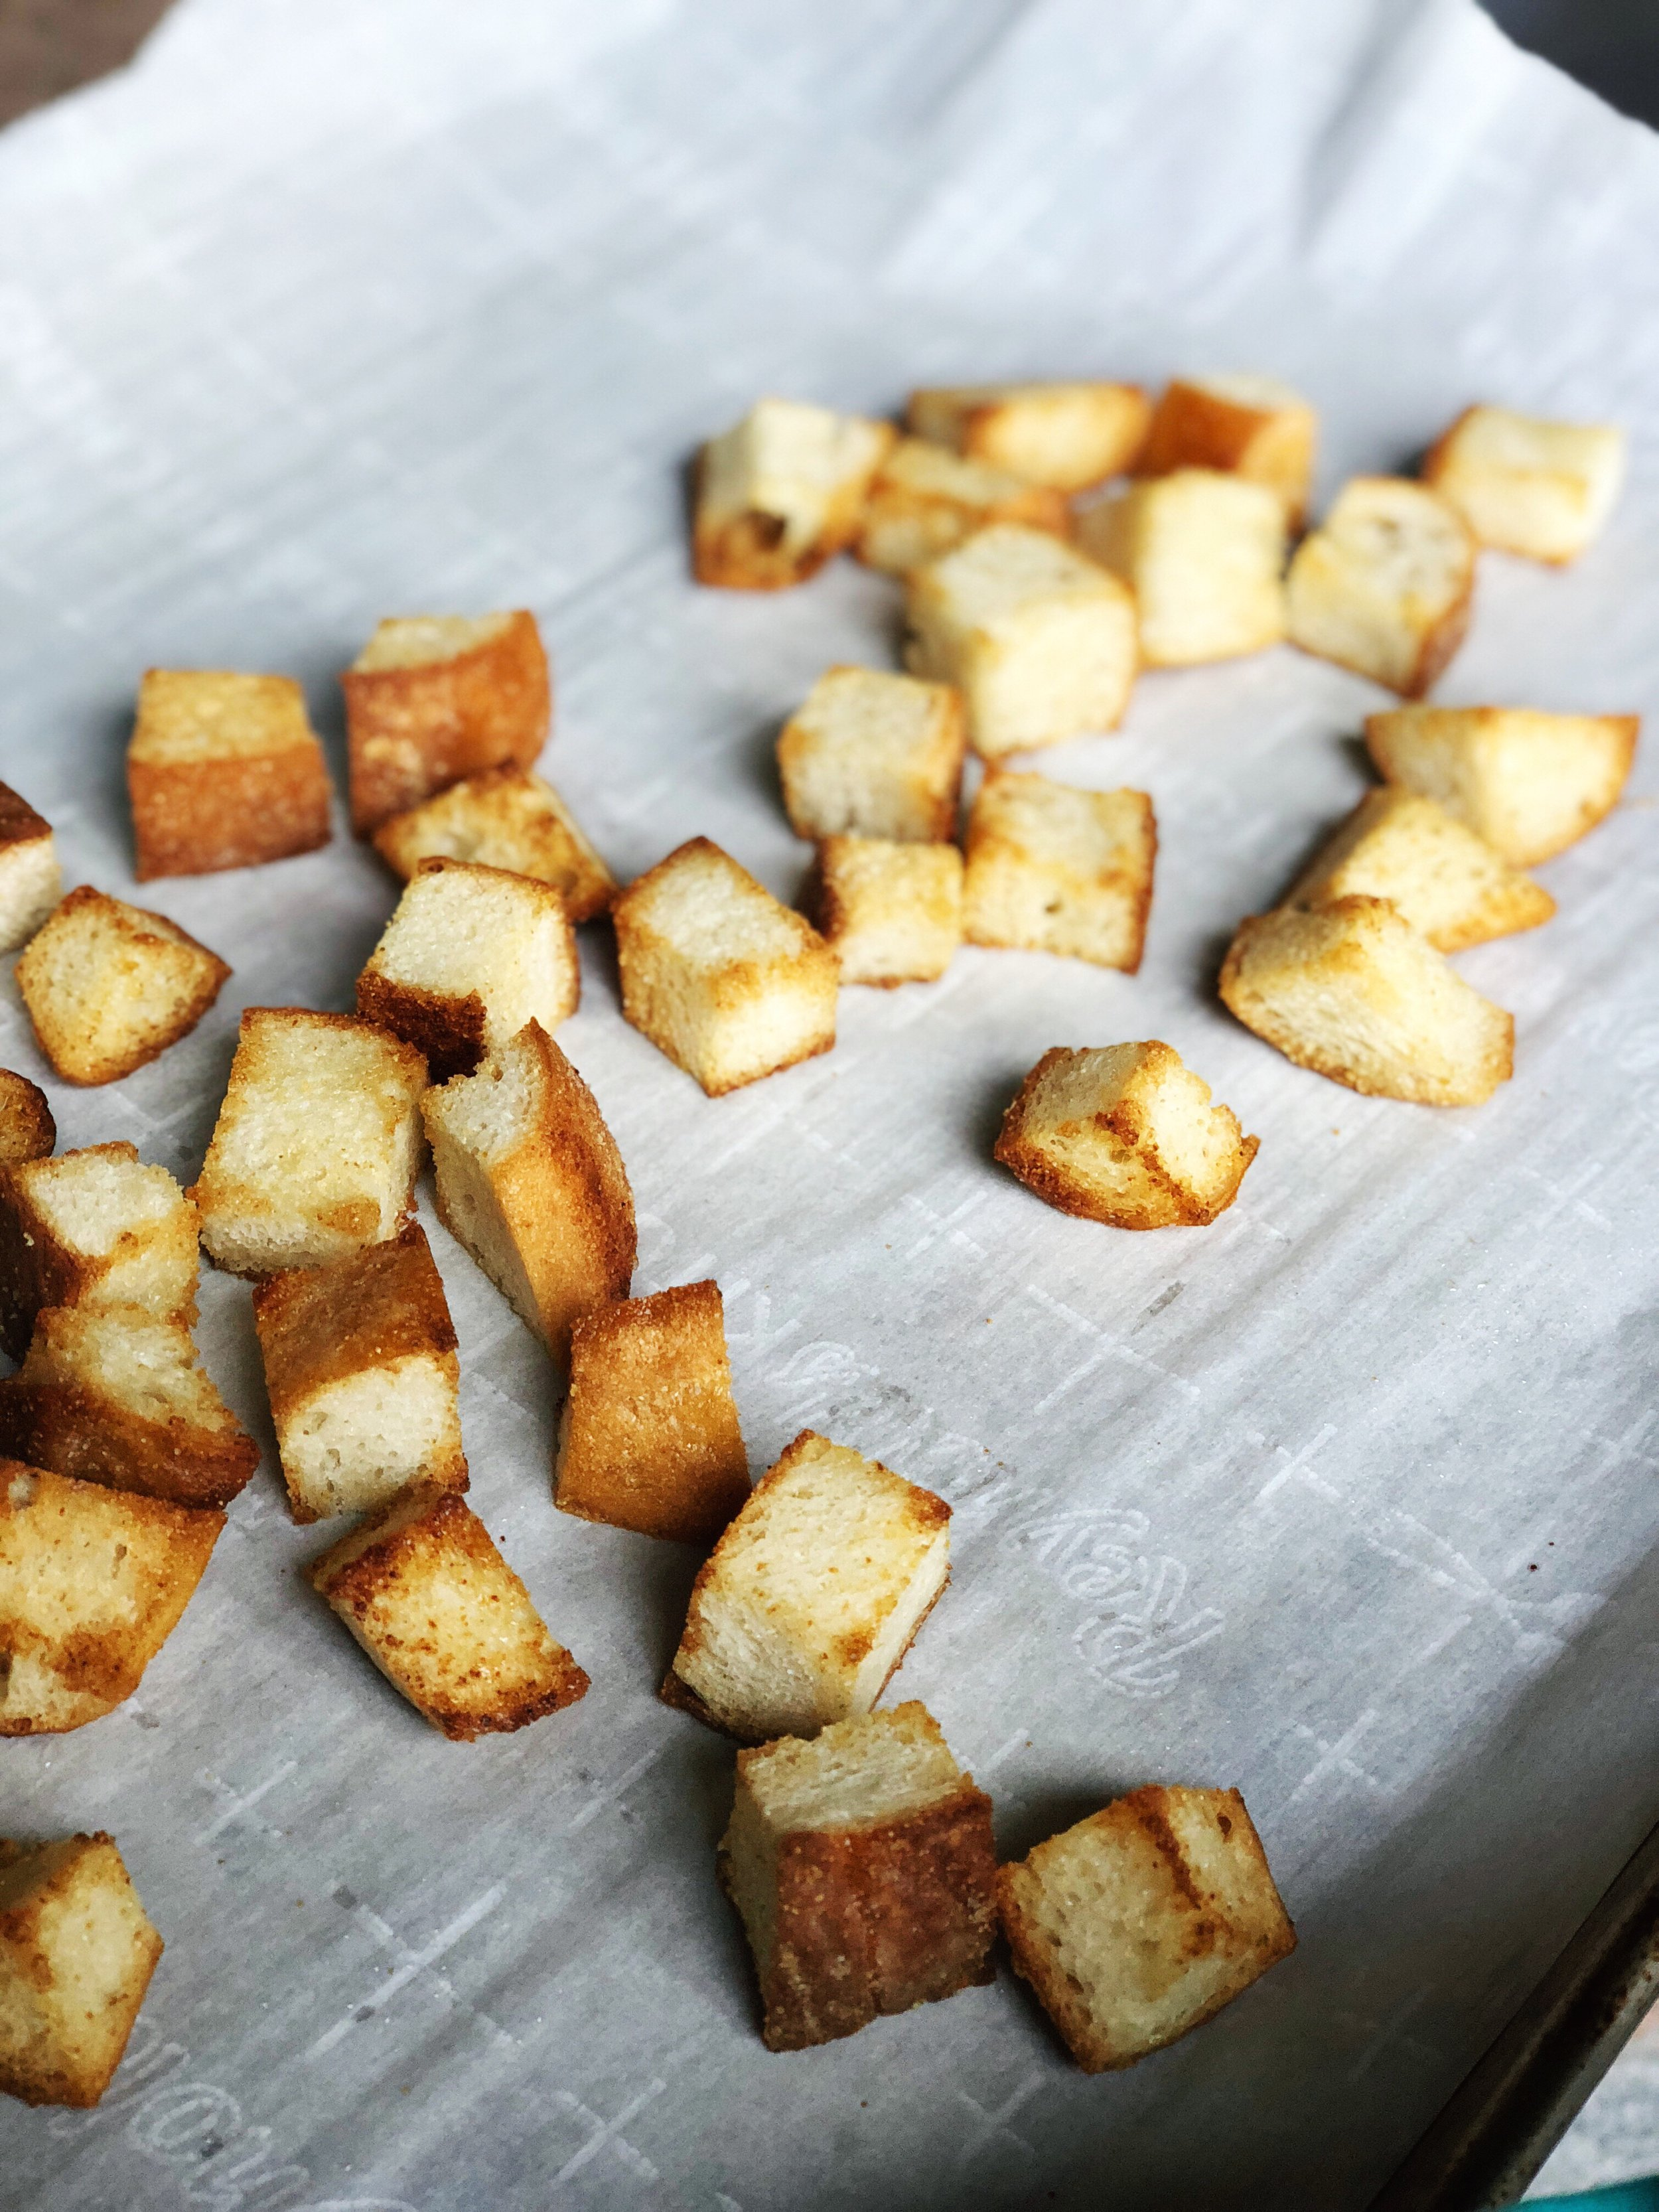 almonds and asana homemade croutons.JPG